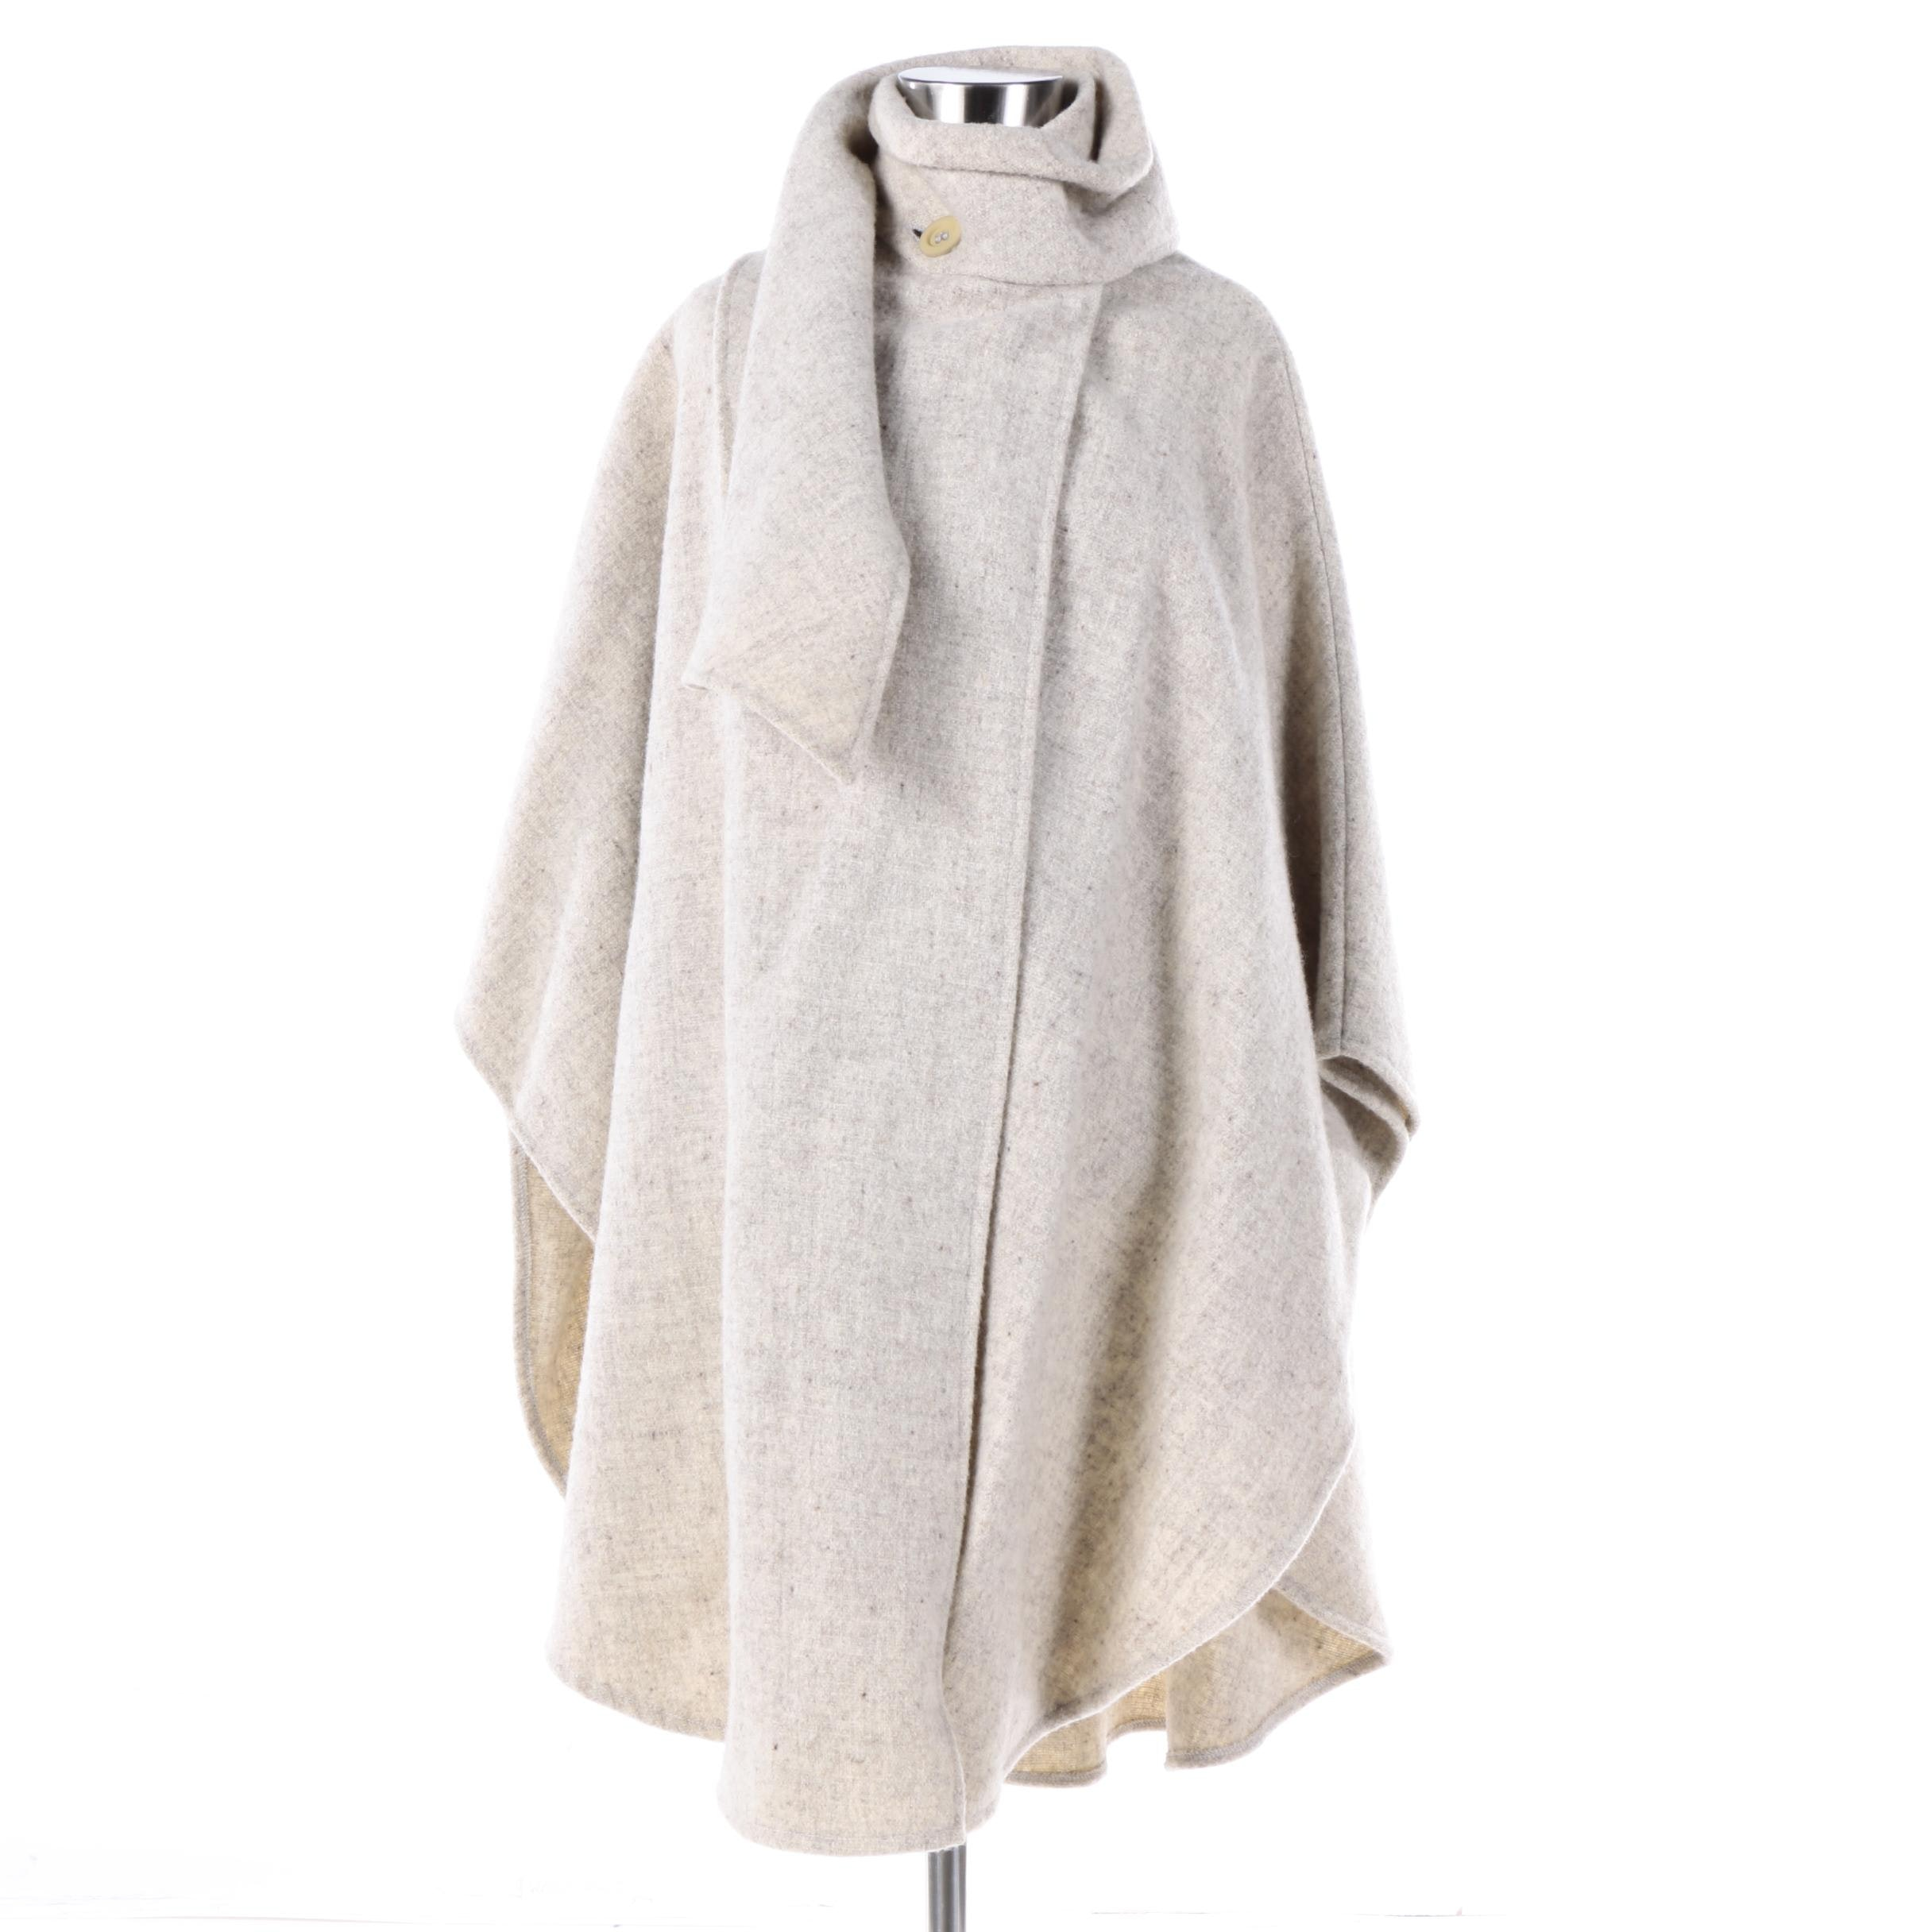 Women's Rusk & Finch Wool Cape with Wrap Collar